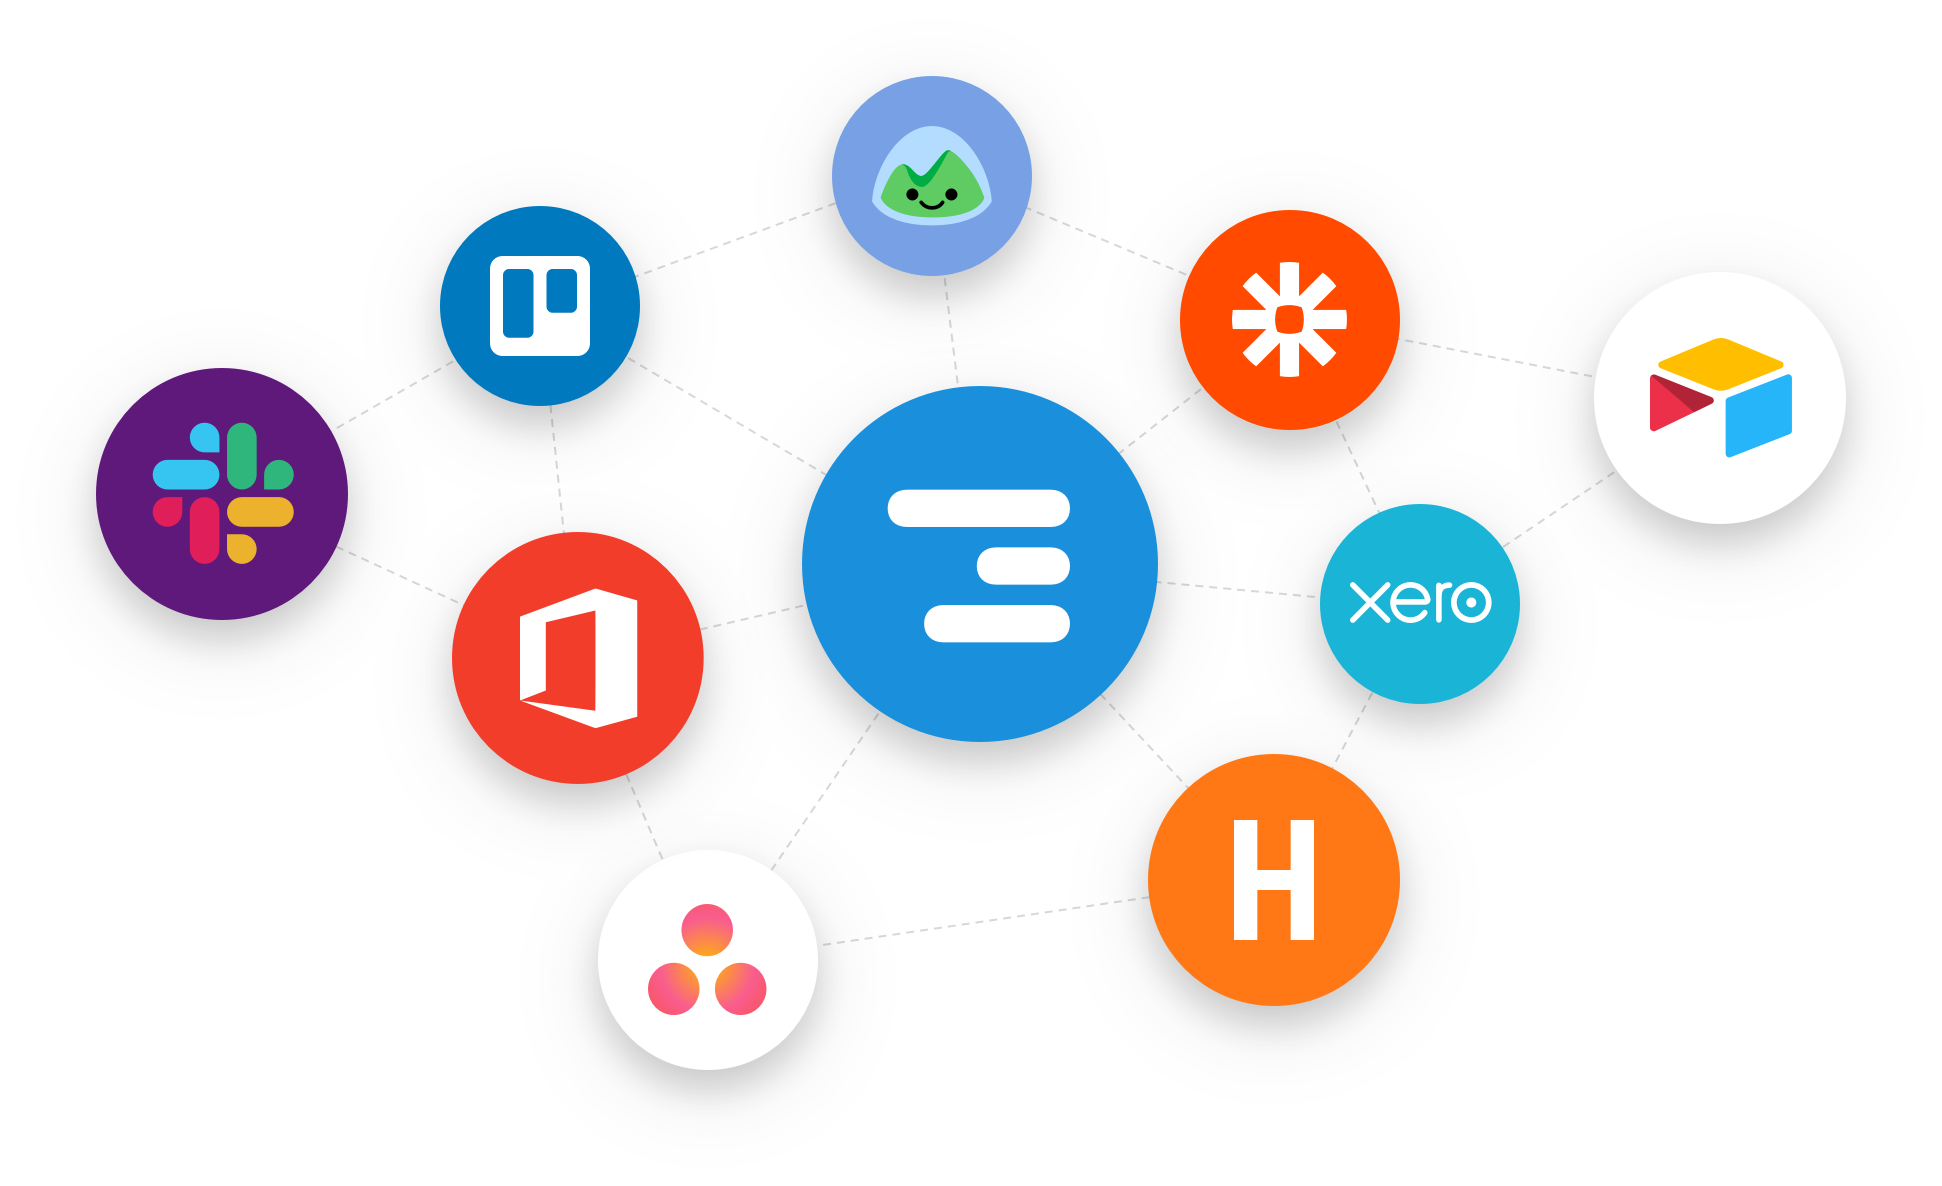 Logos of the services that can integrate with Float